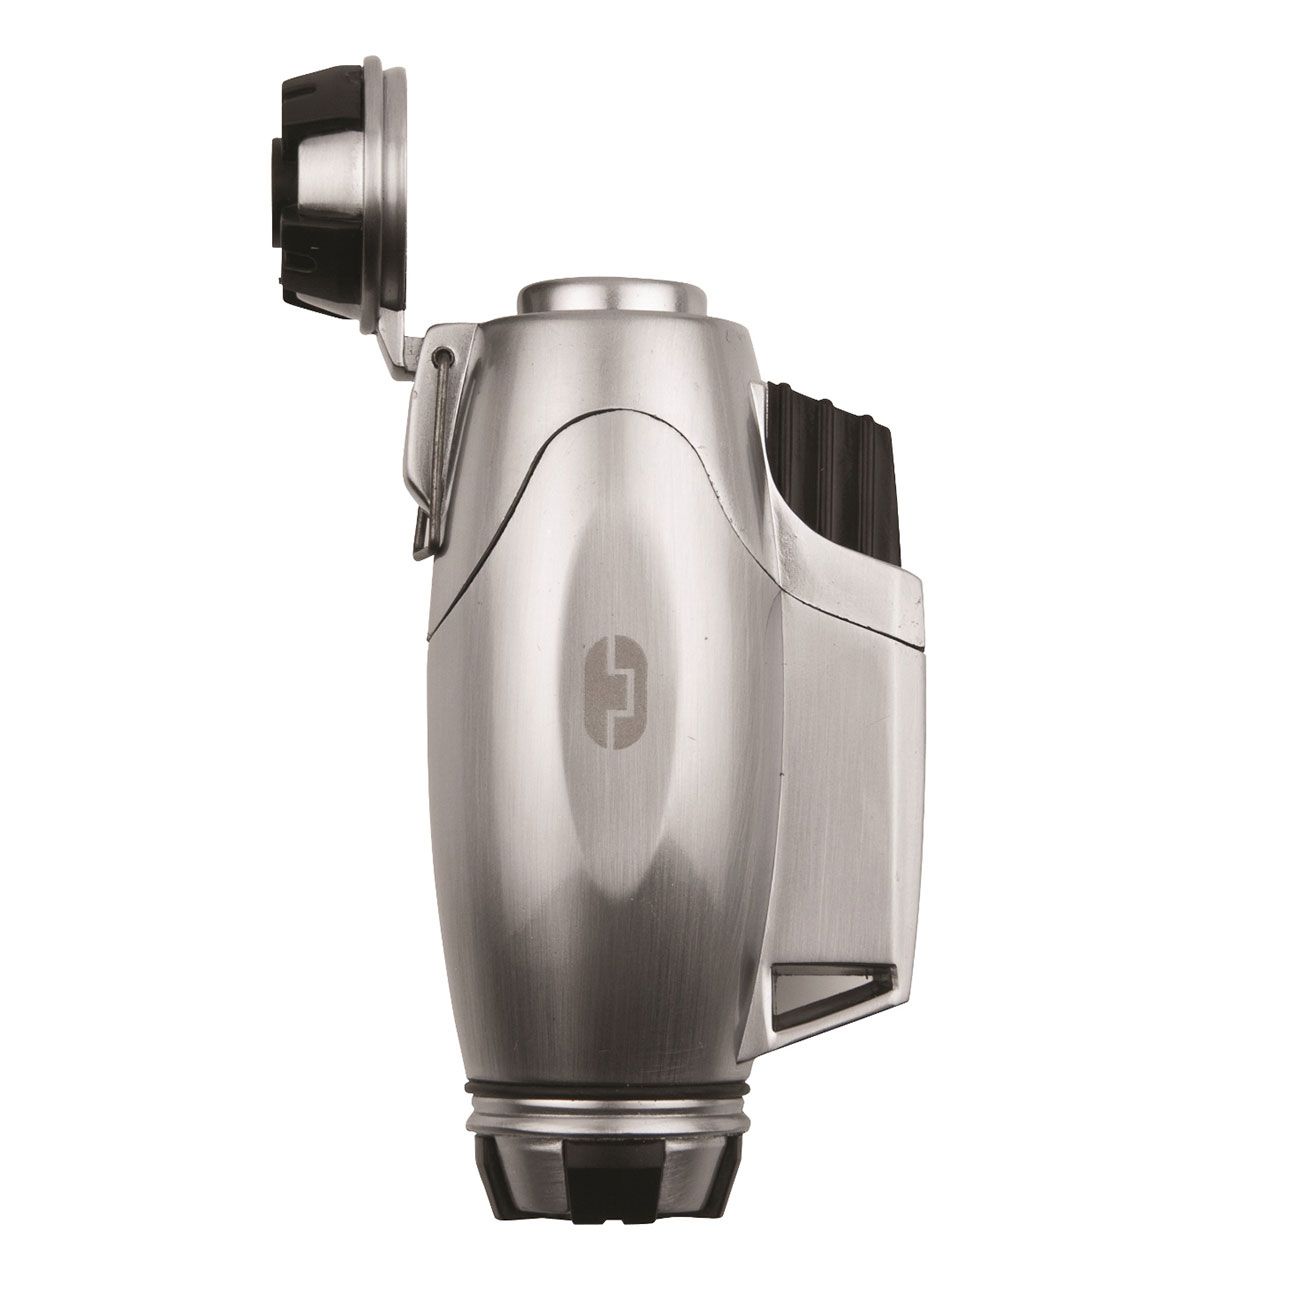 True Utility Sturmfeuerzeug TU407 TurboJet Lighter silber 1